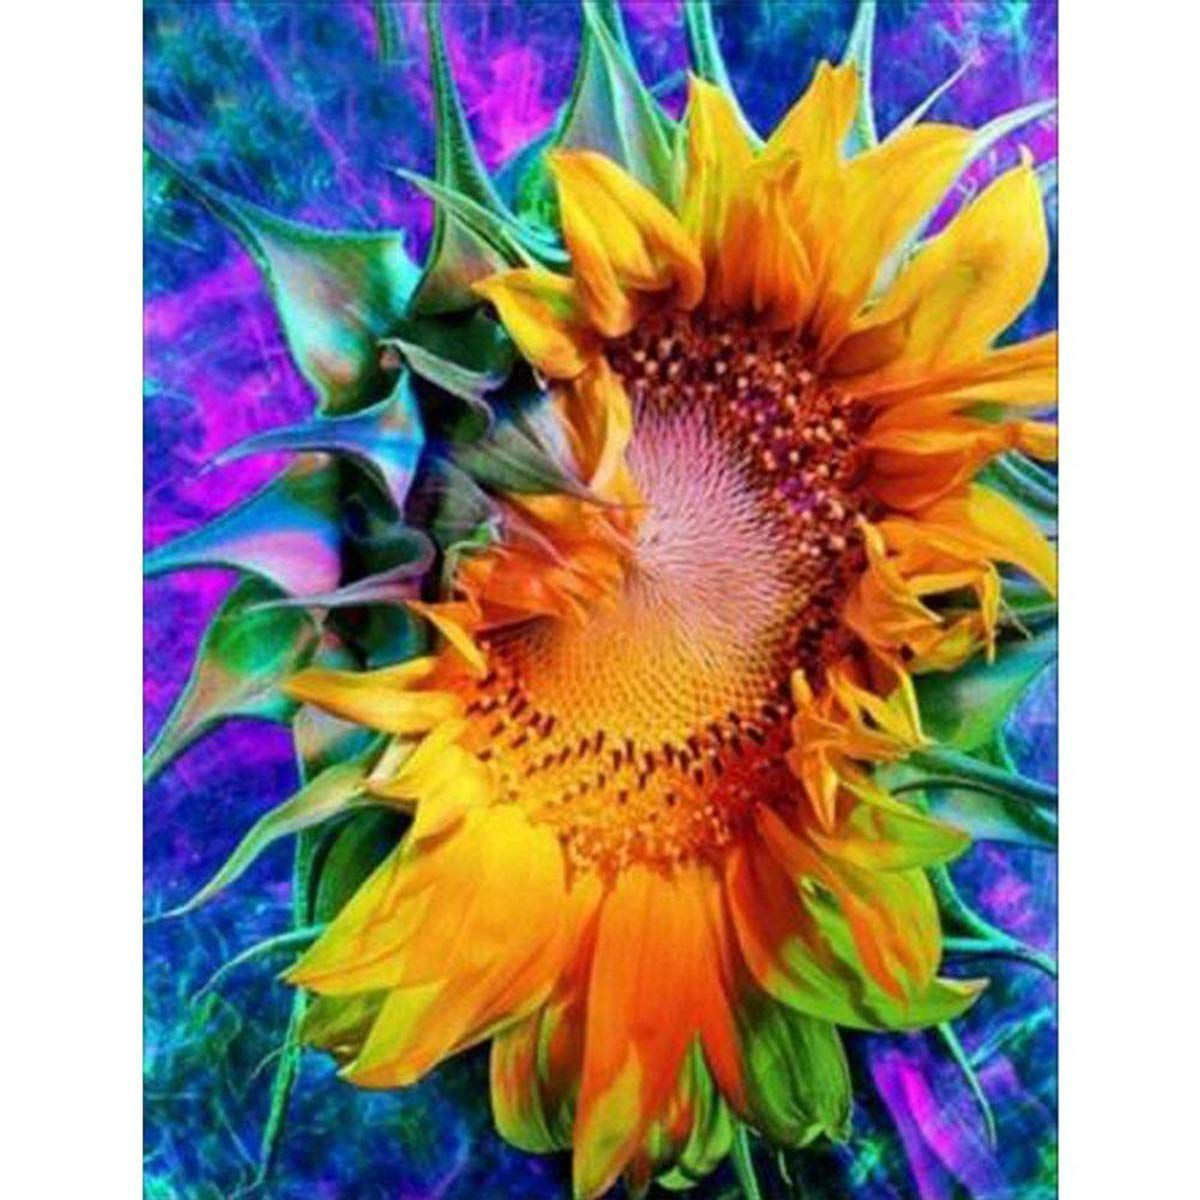 Sunflower 5D Diamond DIY Painting Embroidery Cross Stitch Kit Home Decor Craft